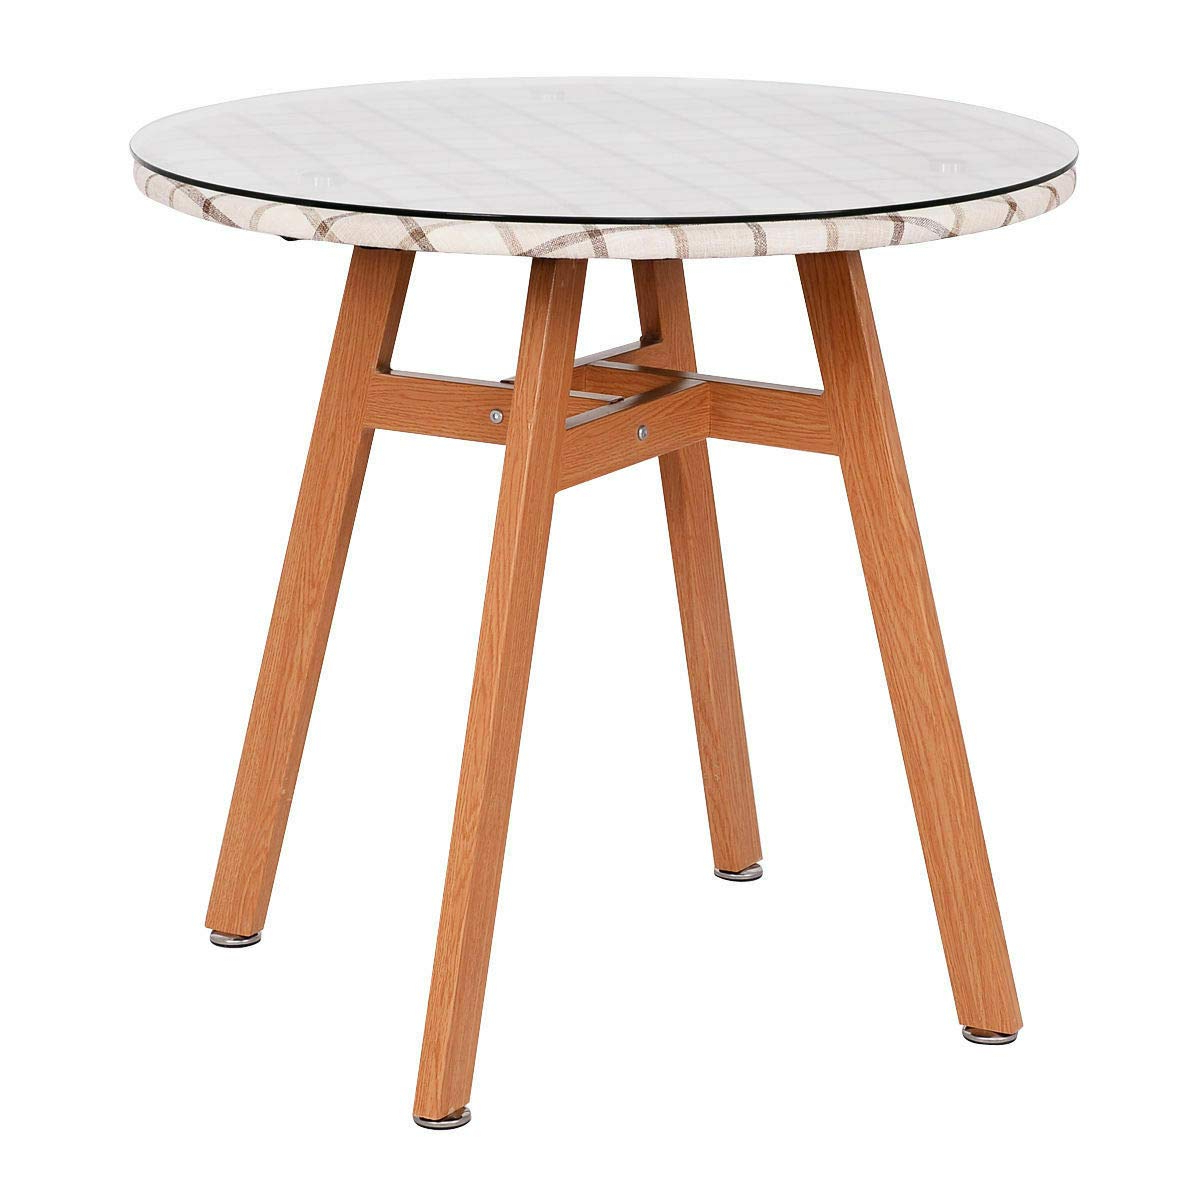 Giantex Round Dining Table Steel Frame Tempered Glass Top Home Decor  Kitchen Furniture Within Fashionable Round Dining Tables With Glass Top (View 14 of 30)